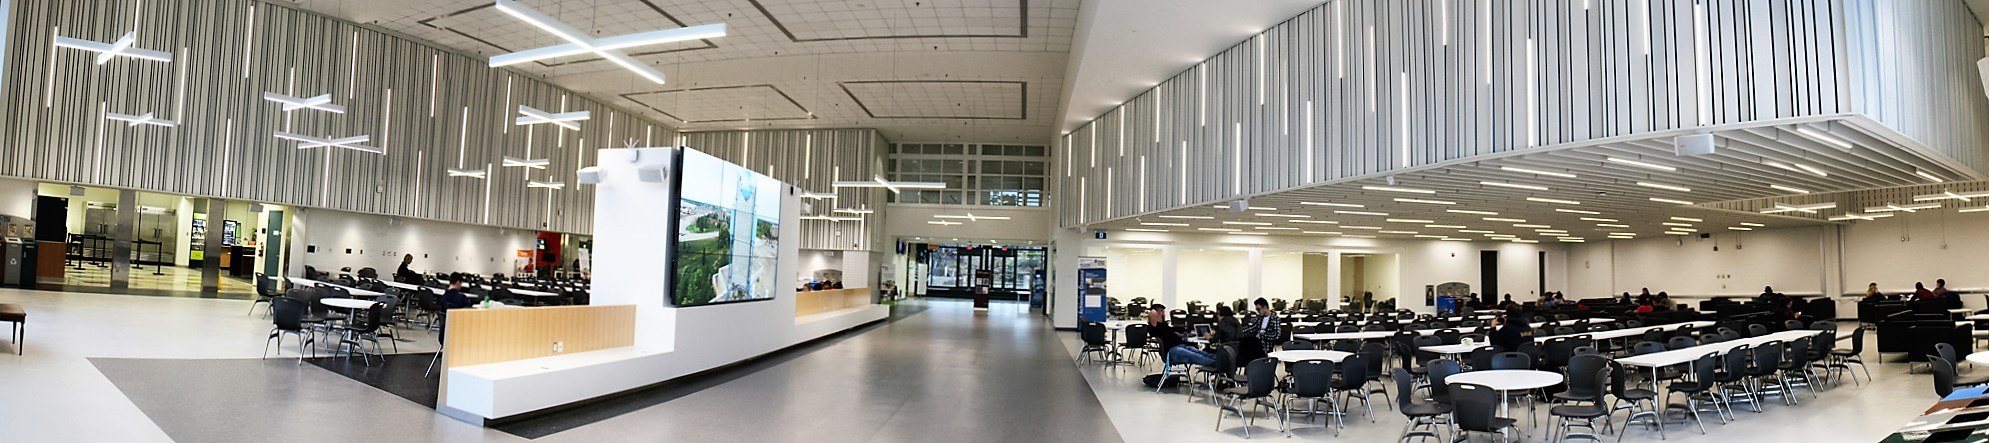 A Popular Student Space At Niagara College Named Among The Best In Canada Niagara At Large